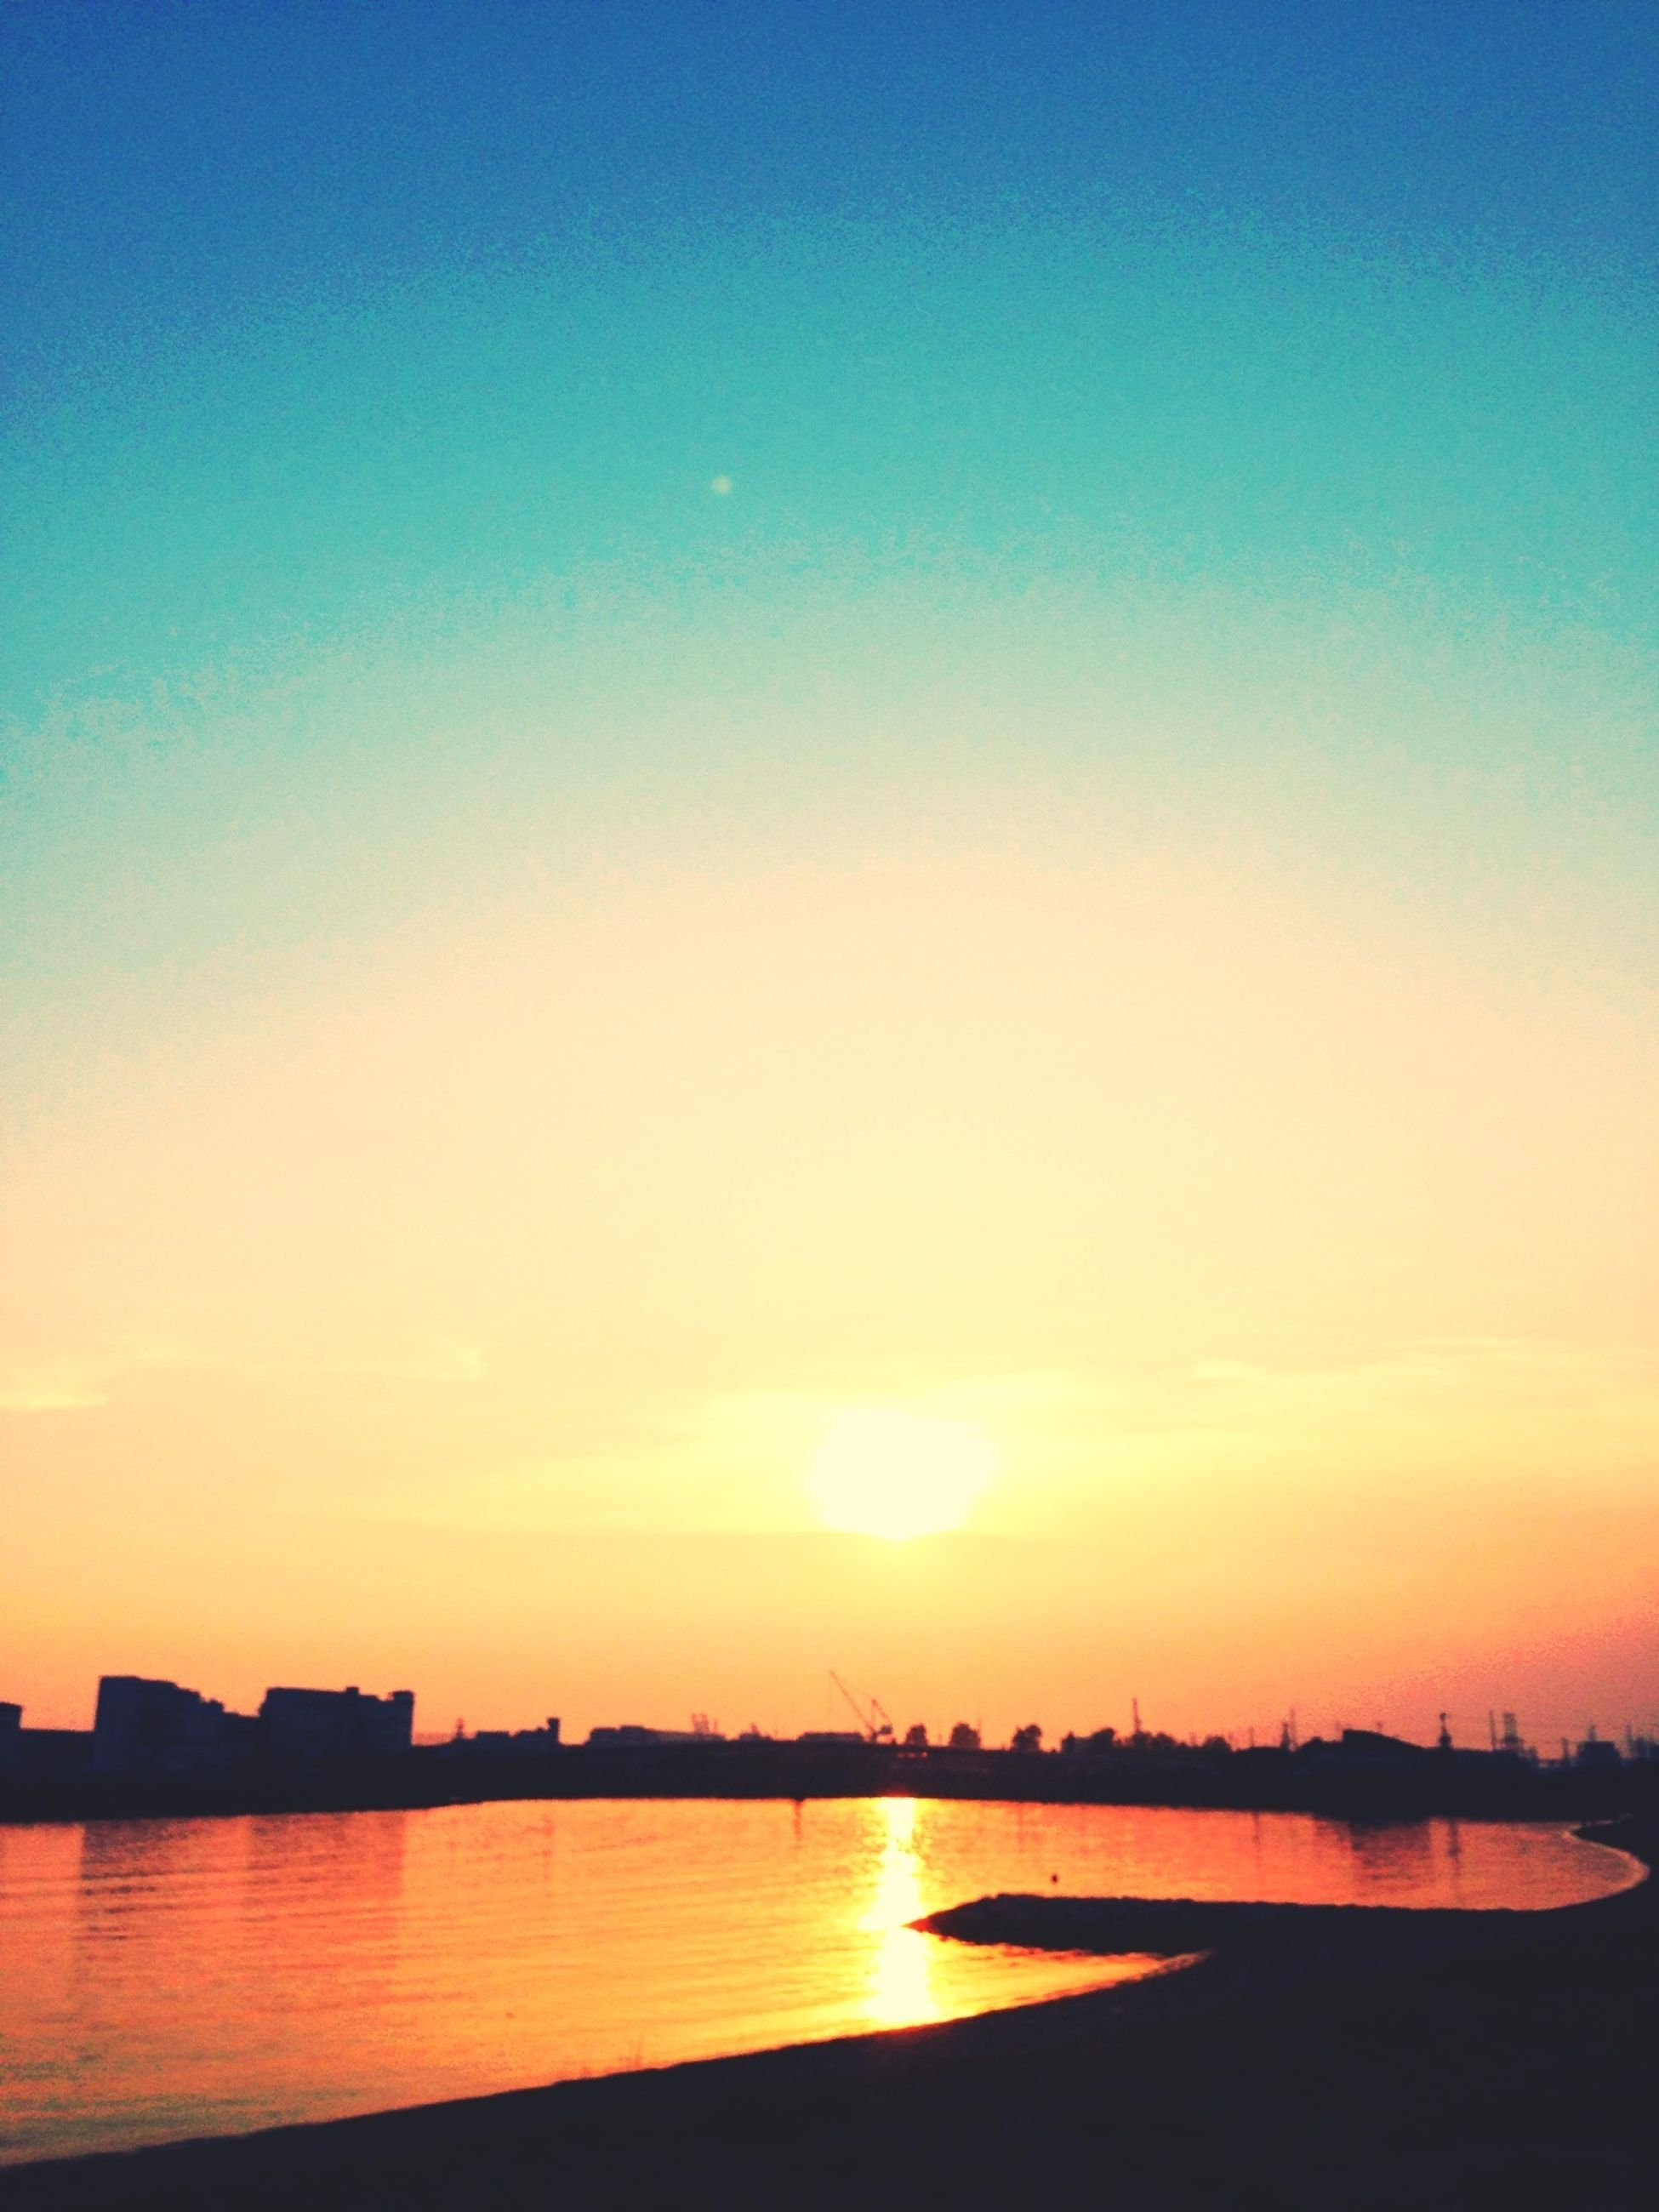 sunset, sun, water, tranquil scene, scenics, tranquility, silhouette, beauty in nature, reflection, sea, orange color, waterfront, sunlight, sky, idyllic, nature, copy space, clear sky, sunbeam, lake